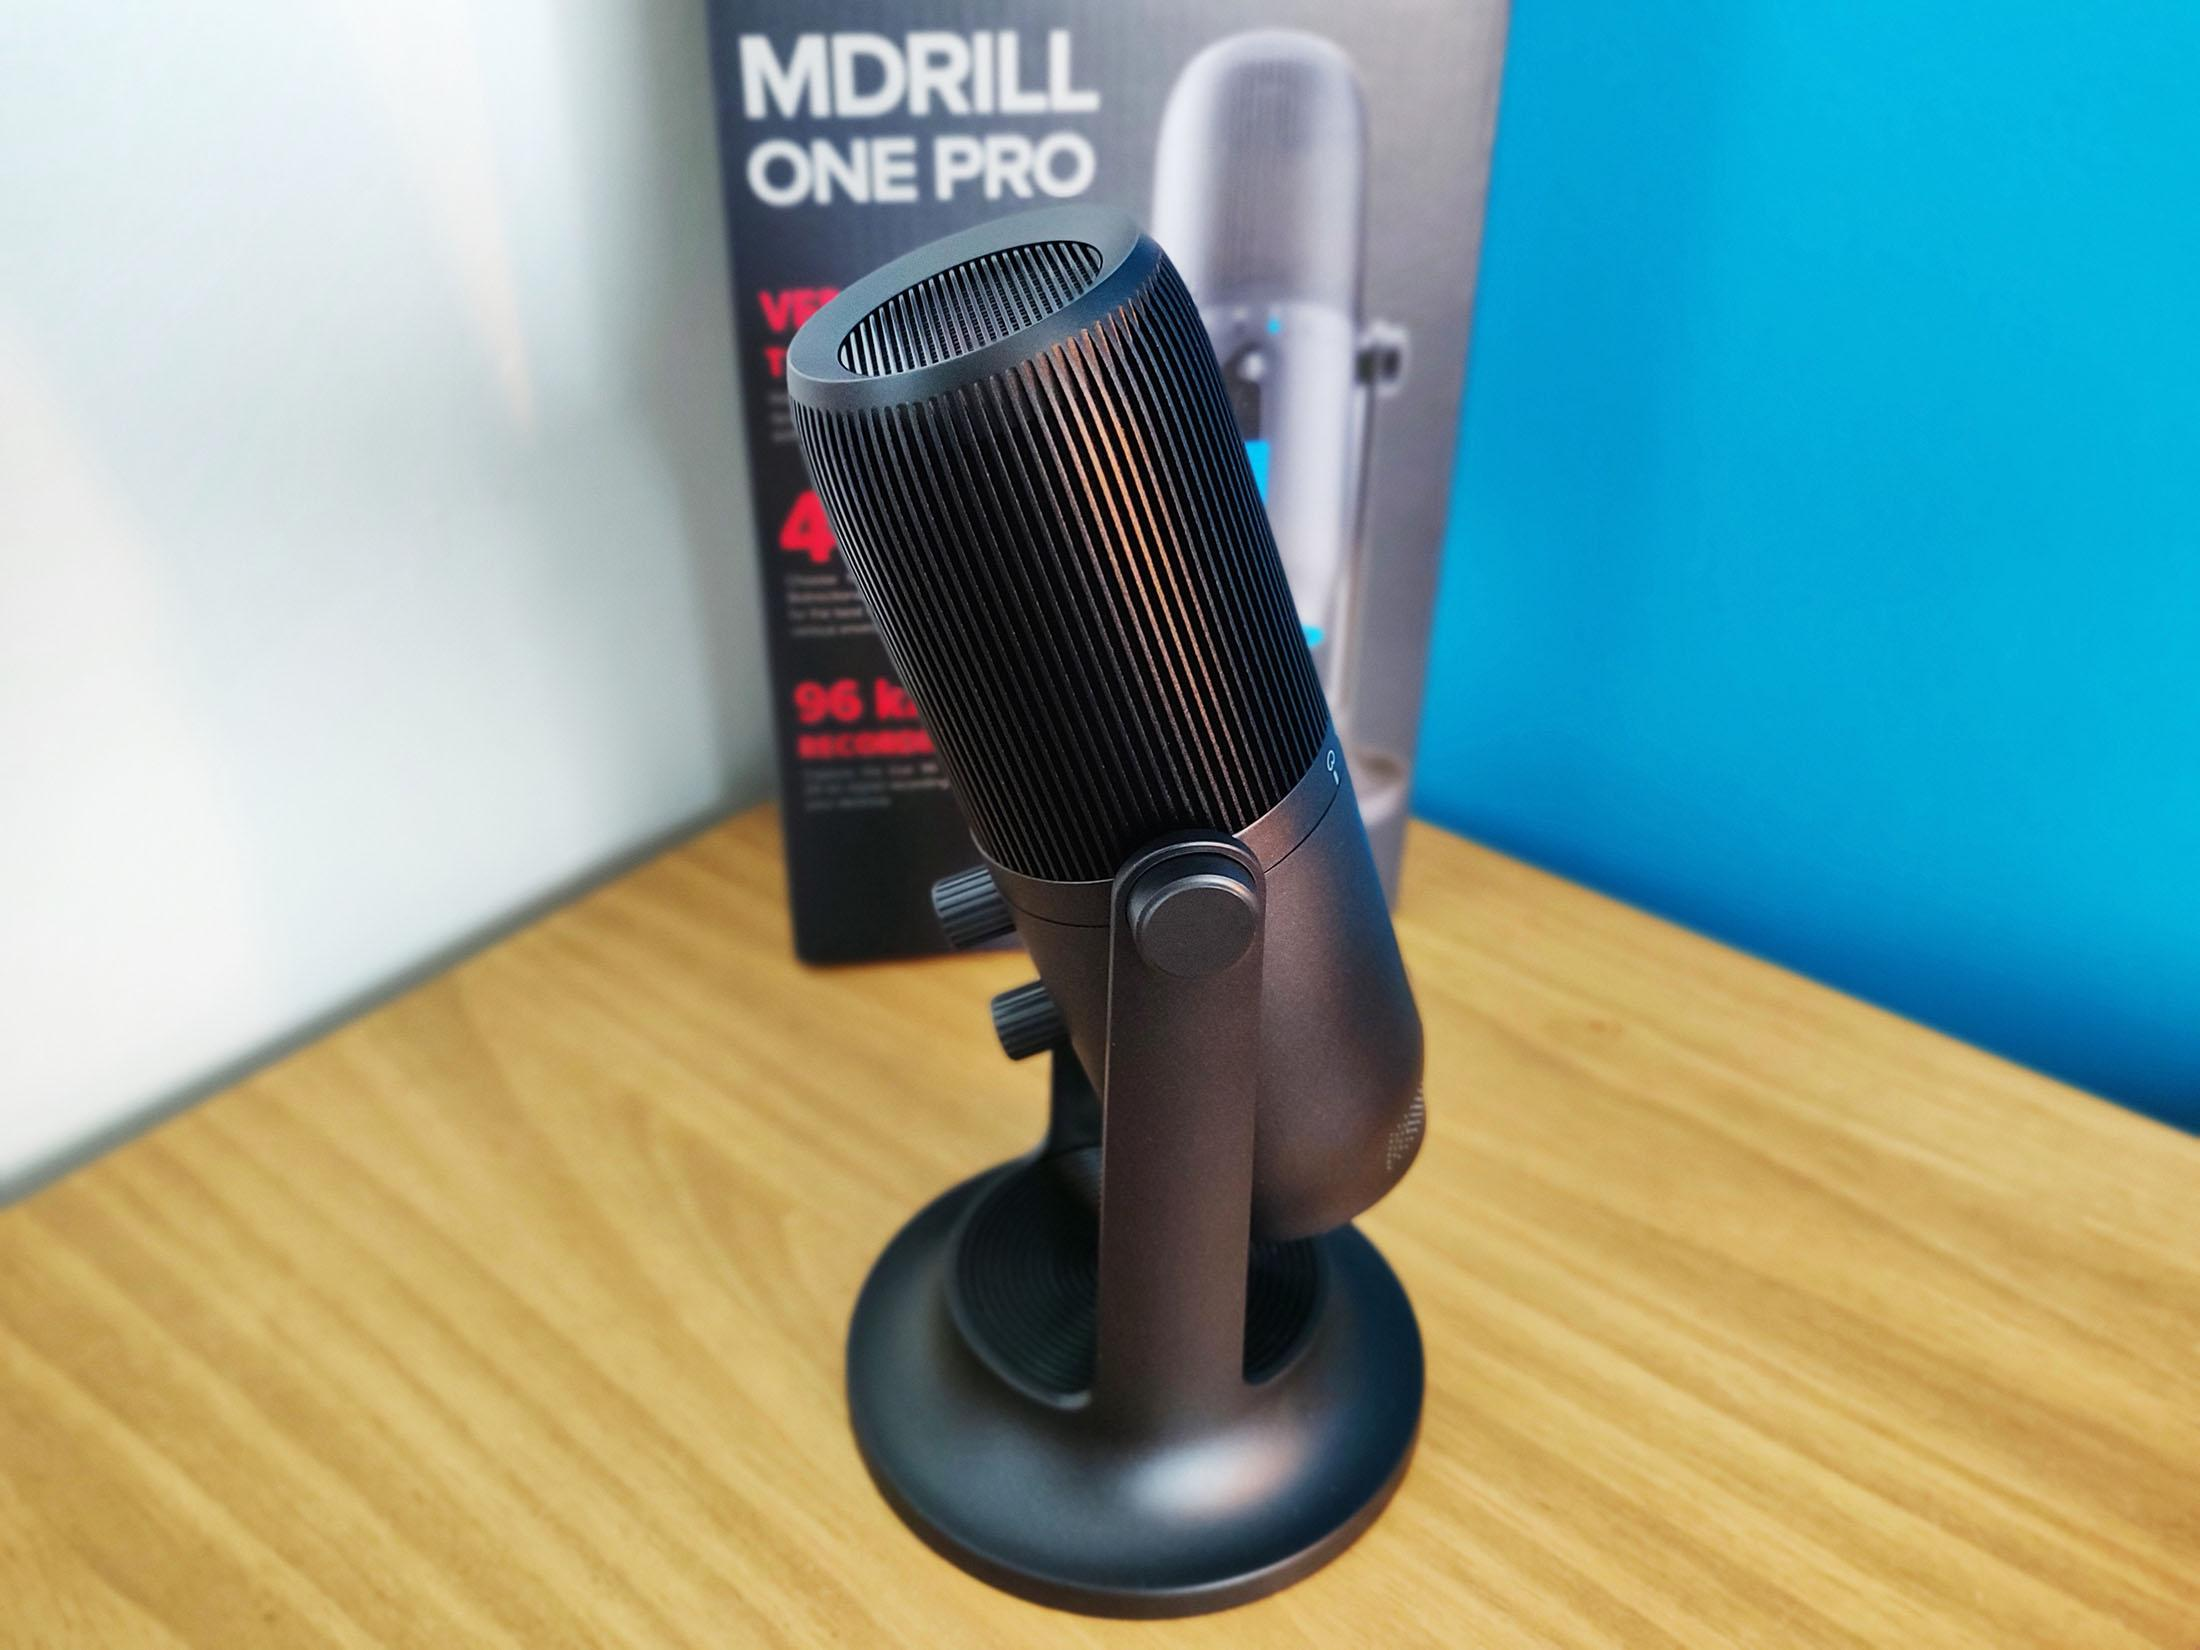 Thronmax Mdrill One Pro Test Microphone